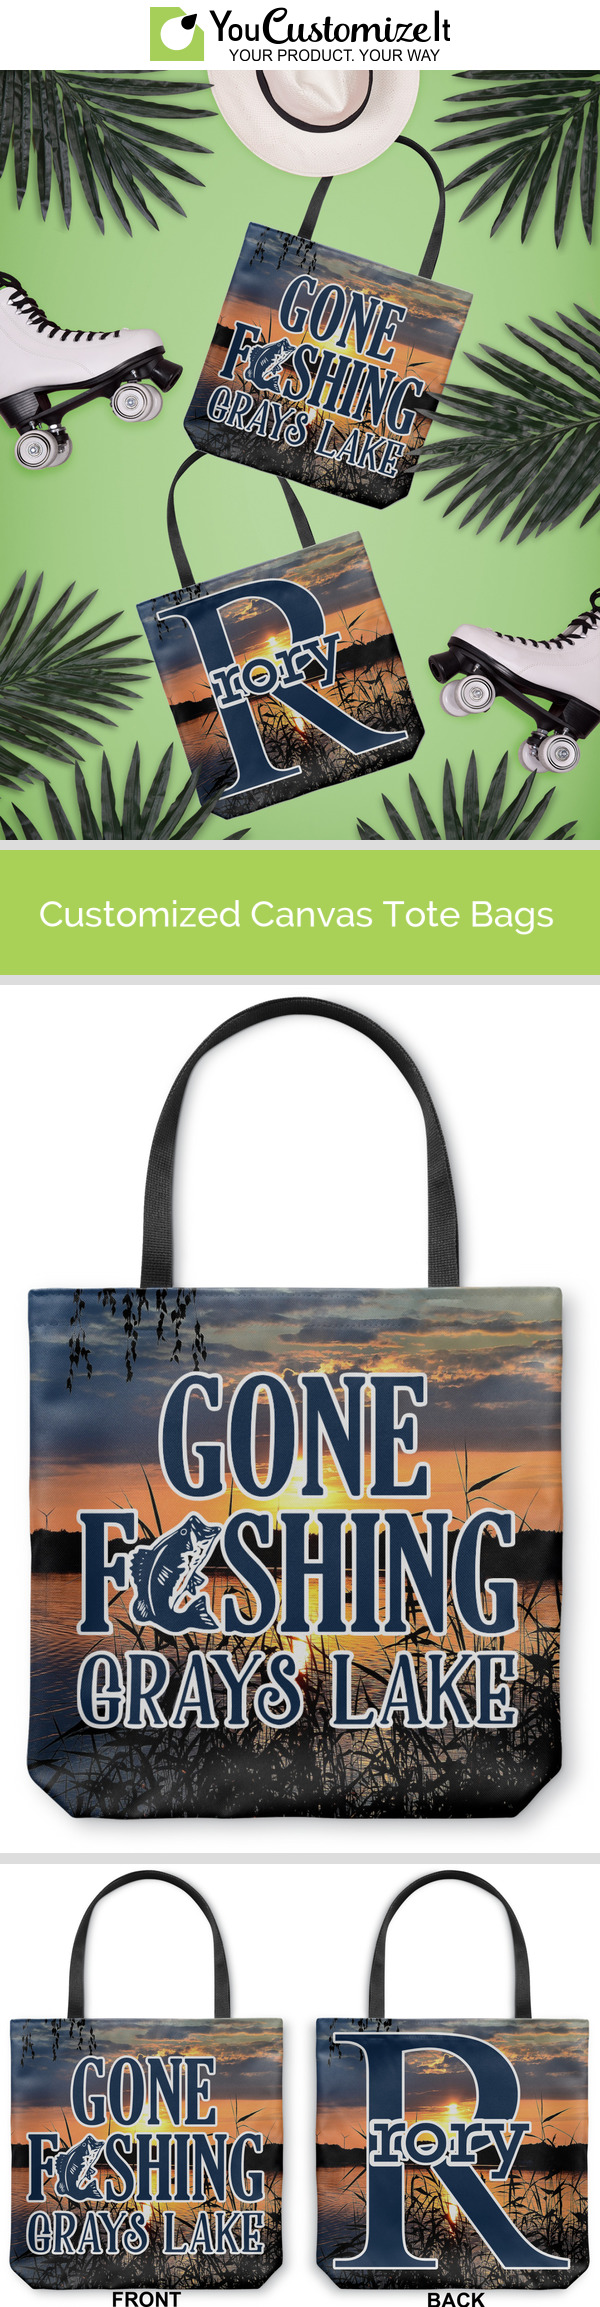 Pin On Travel In Style Customized Personalized Luggage Travel Accessories